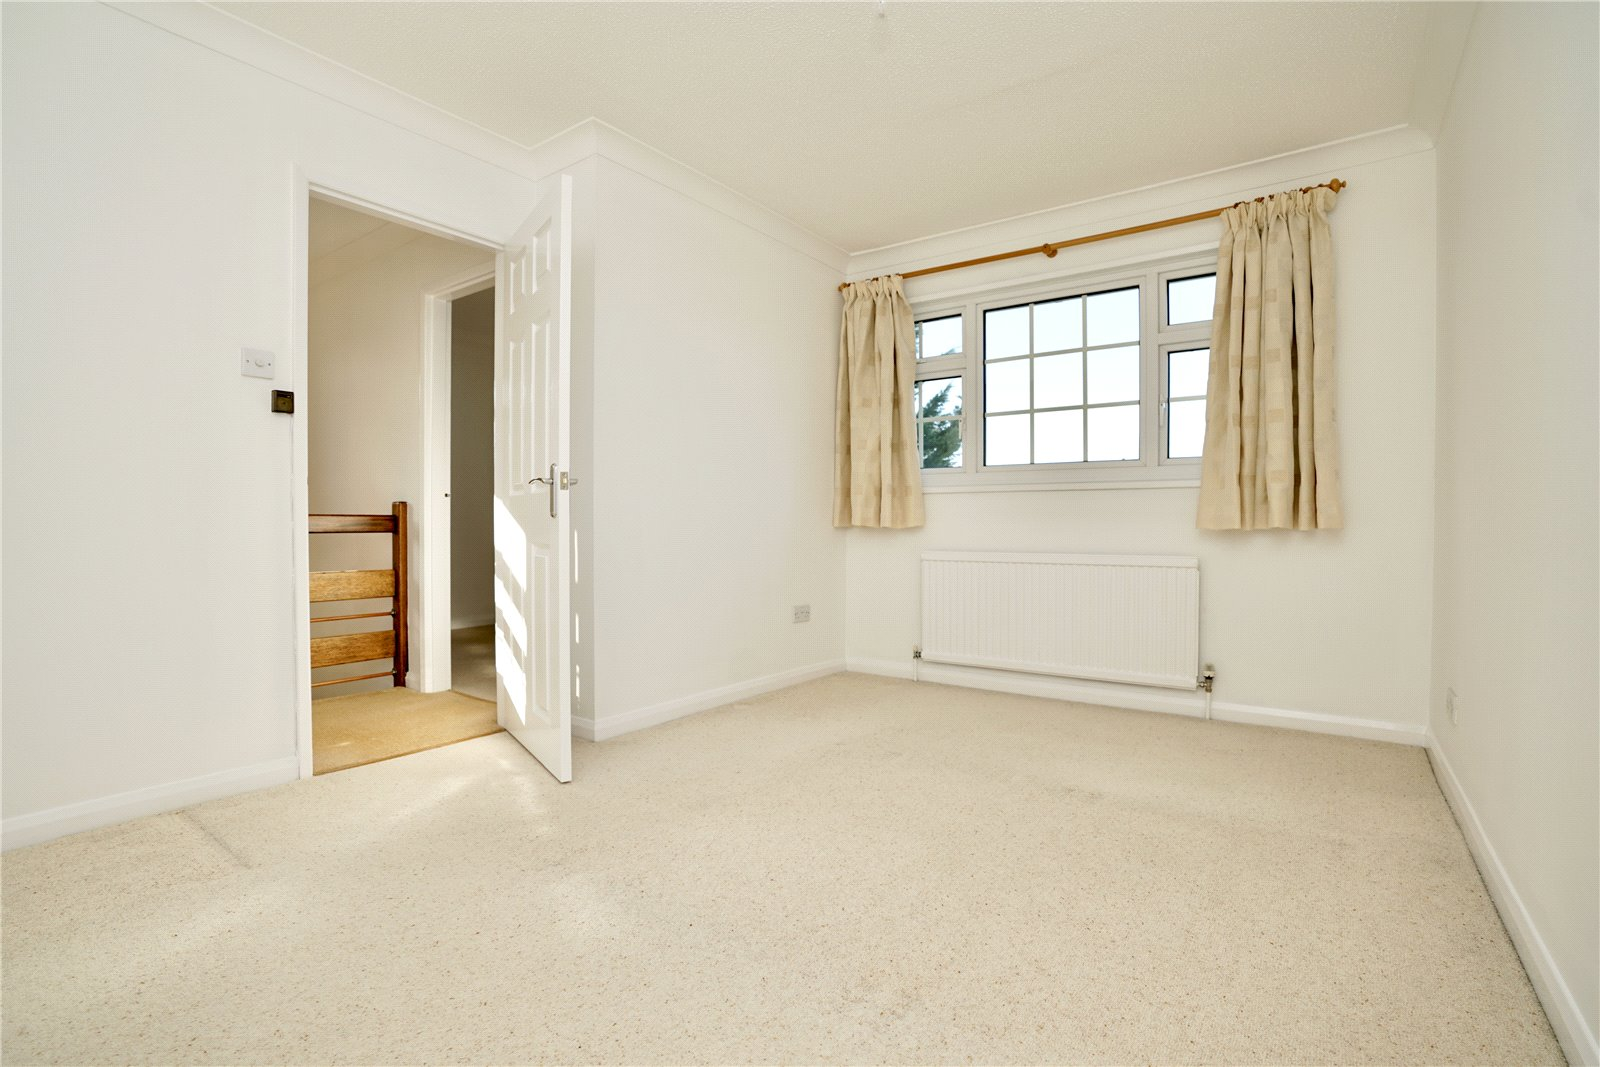 4 bed house for sale in All Hallows, Sandy  - Property Image 9